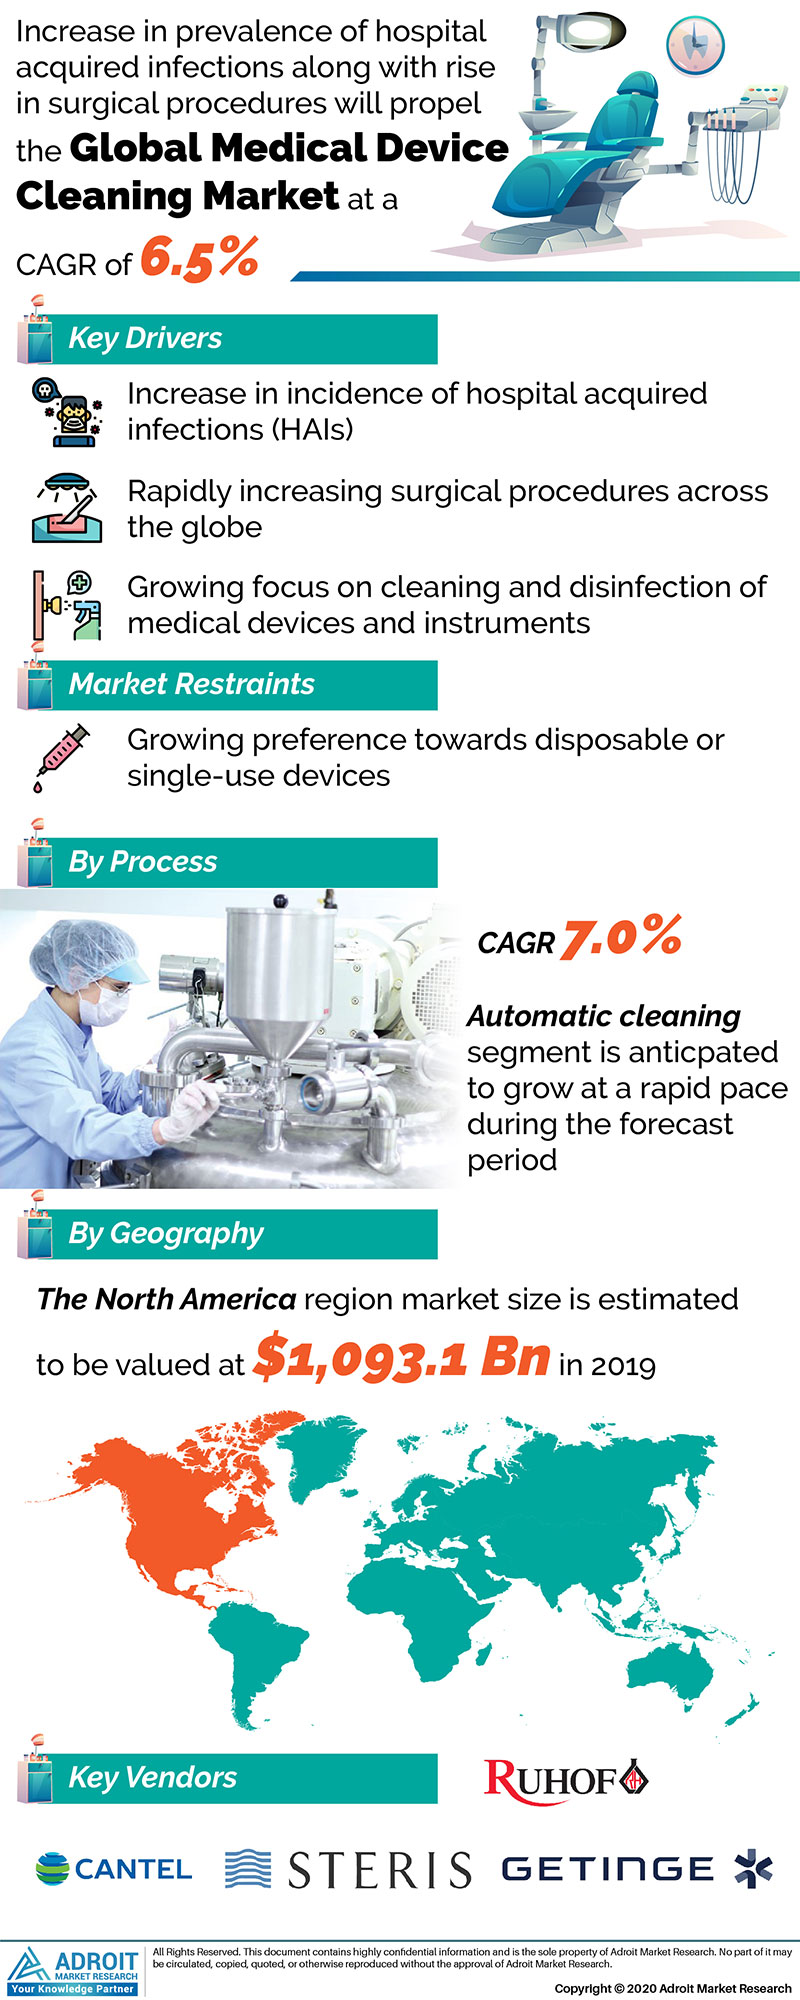 Medical Device Cleaning Market Size 2017 By Application, Product, Region and Forecast 2019 to 2025